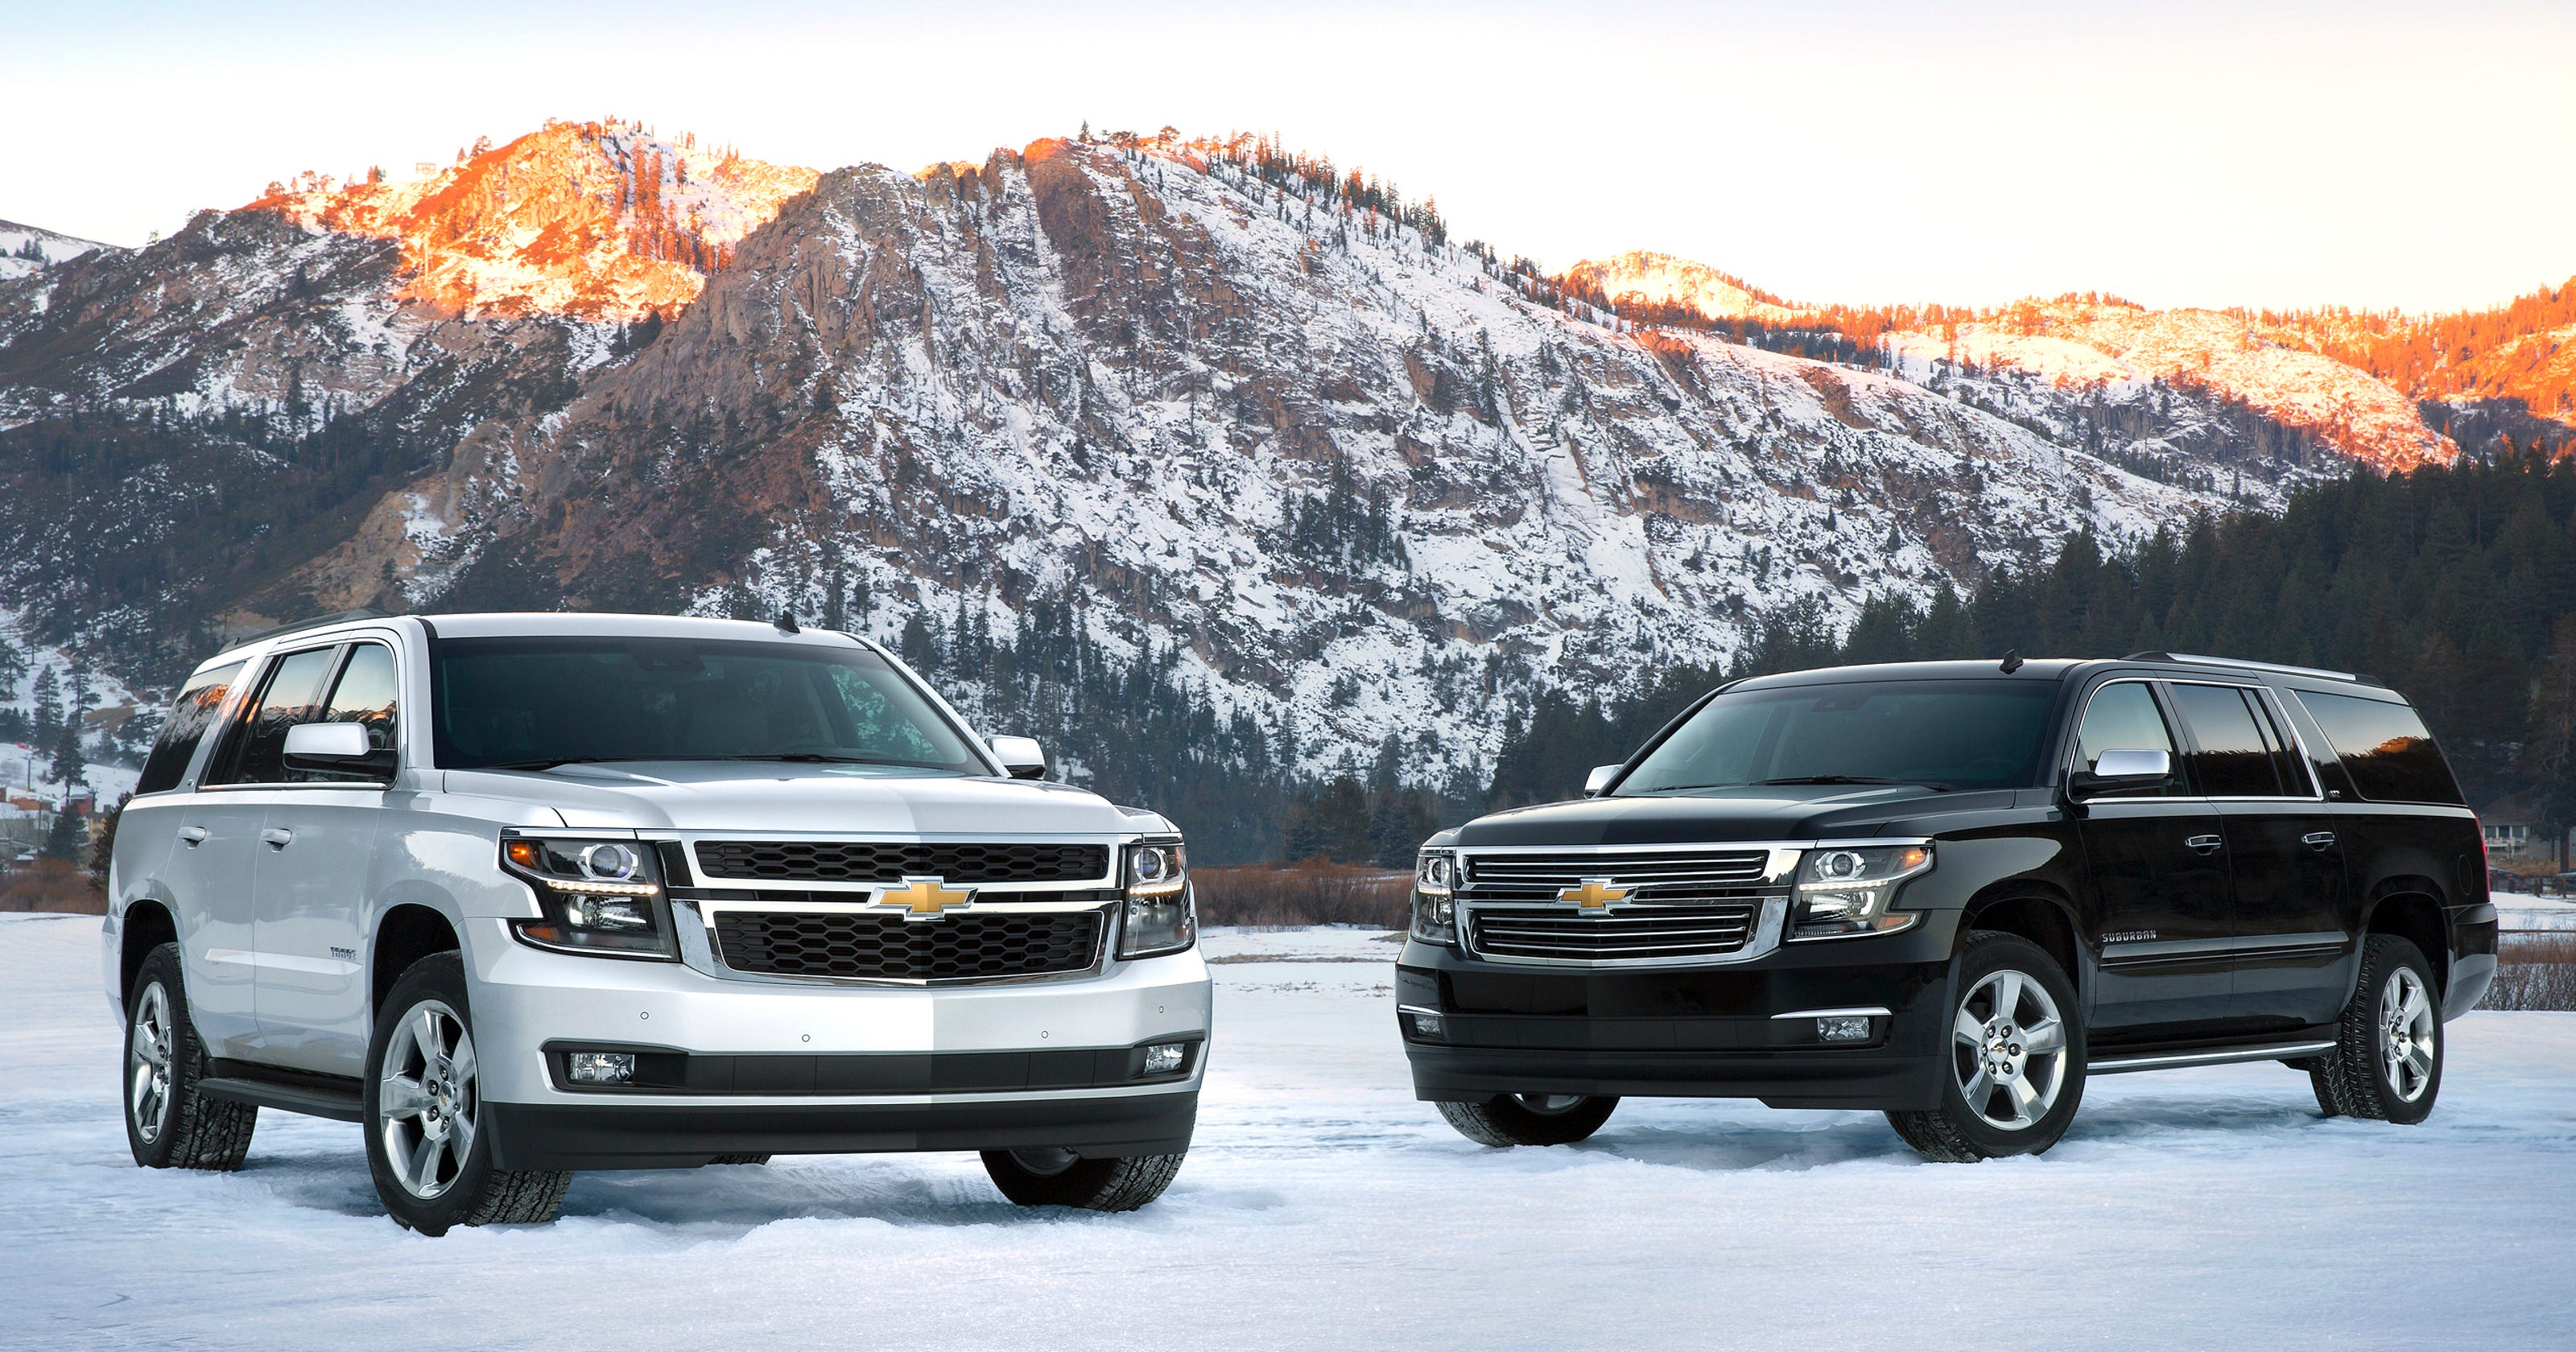 Test Drive: Major overhaul for Chevy Tahoe